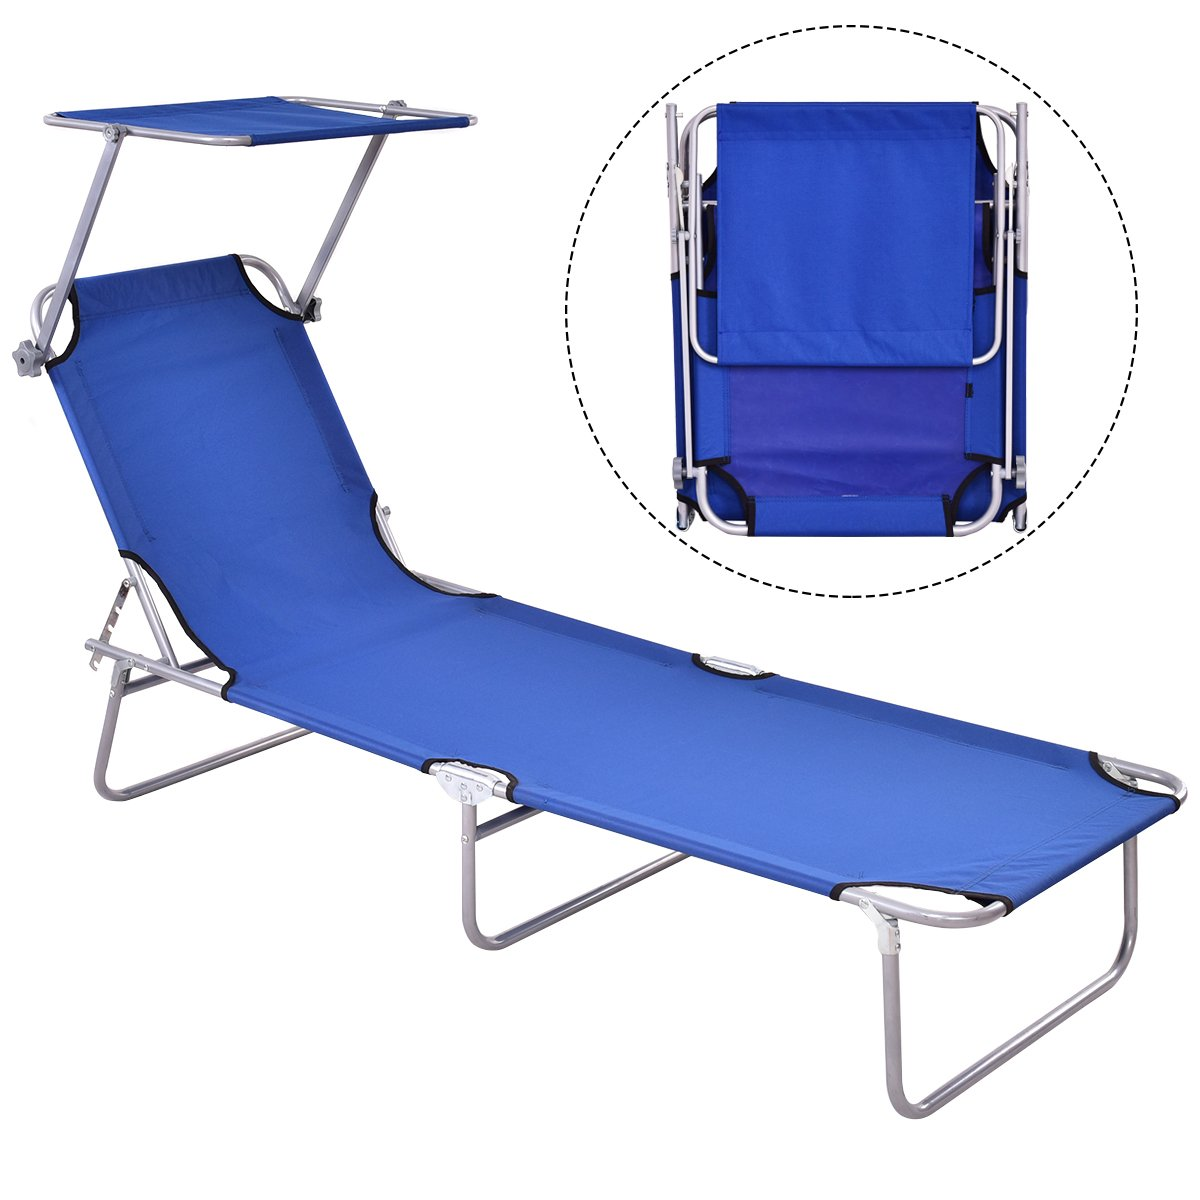 GYMAX Lounge Chair, Folding Recliner Patio Chair for Outdoor Patio Garden Beach Pool with Adjustable Reclining Positions, Sun Shade (Black) (Blue)